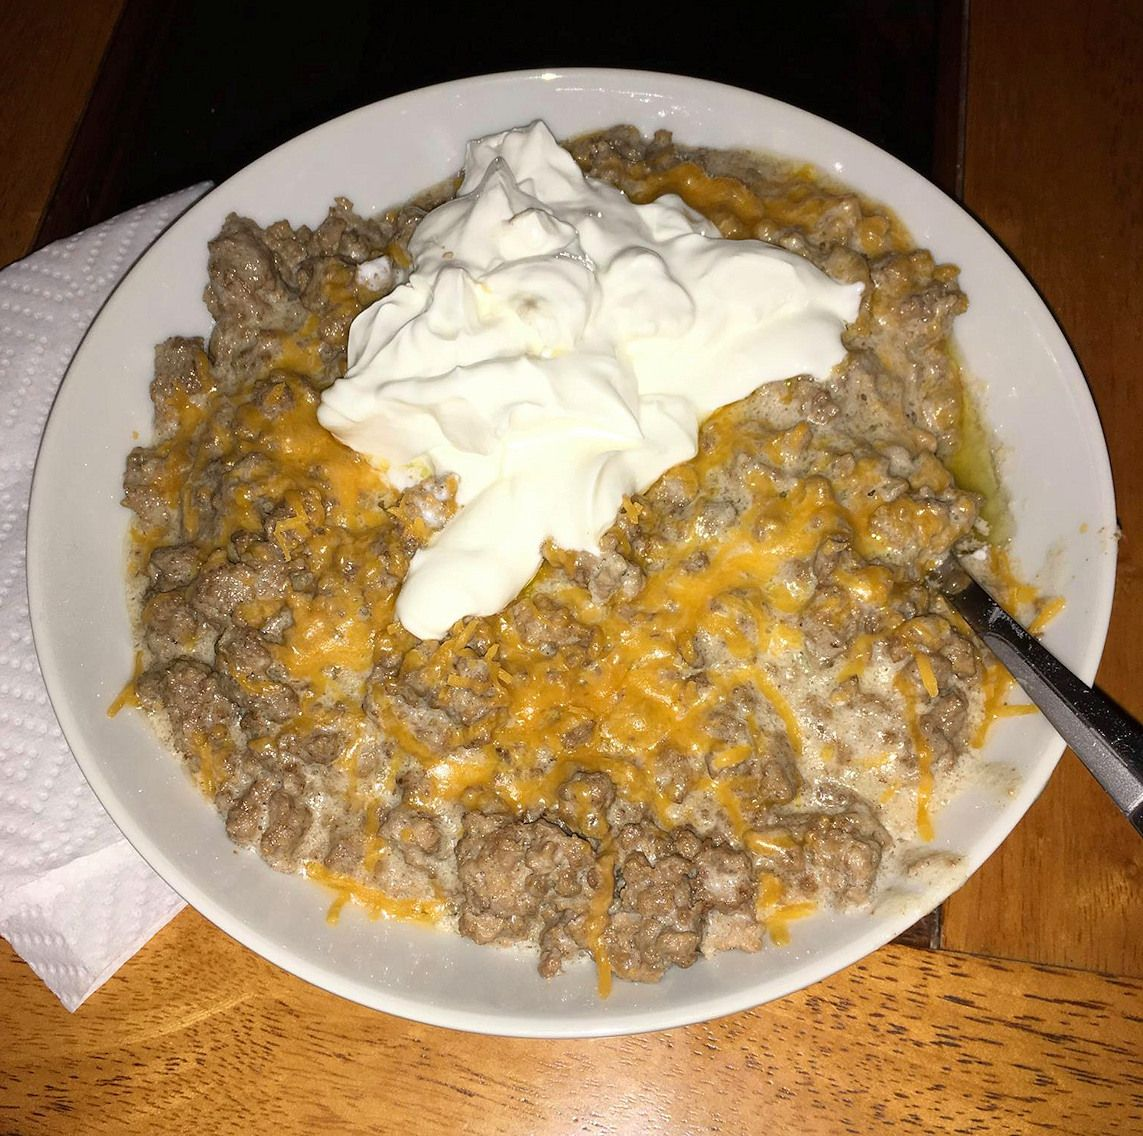 Daryl S Zero Carb Hiney Helper Recipe A Lb Of Ground Beef 4oz Of Cream Cheese When It S Almost D Zero Carb Foods Dinner With Ground Beef Sour Cream Recipes